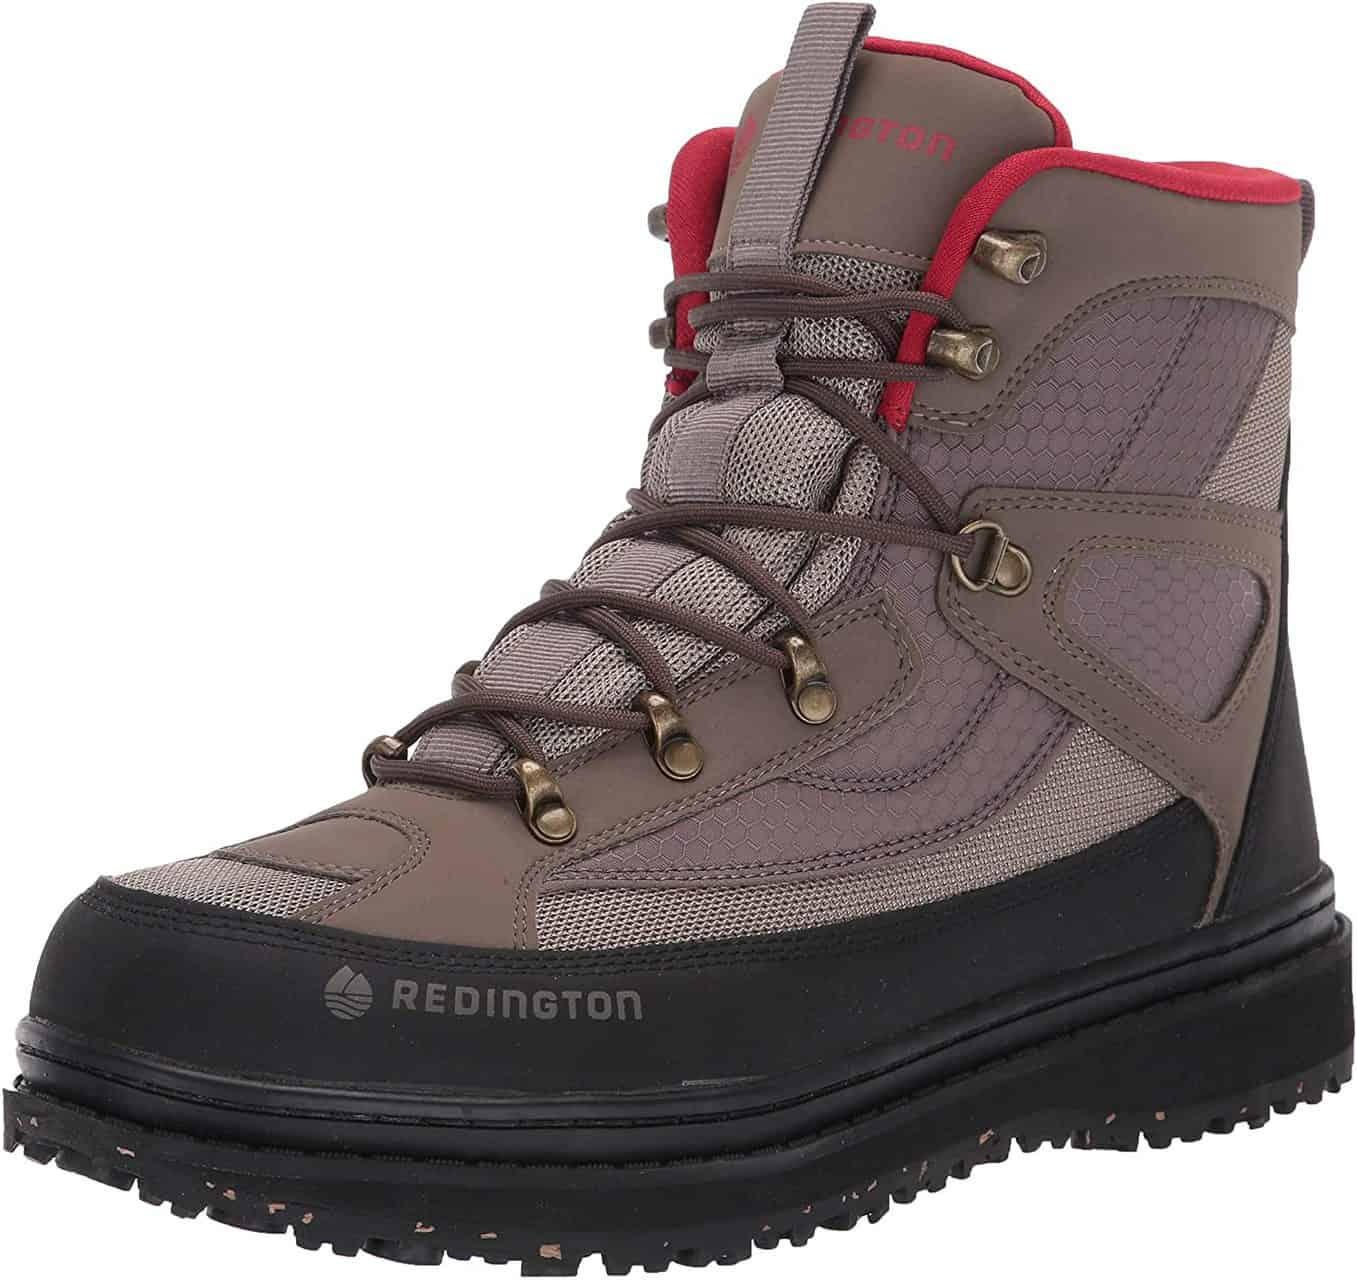 Skagit River Wading Boots by Redington